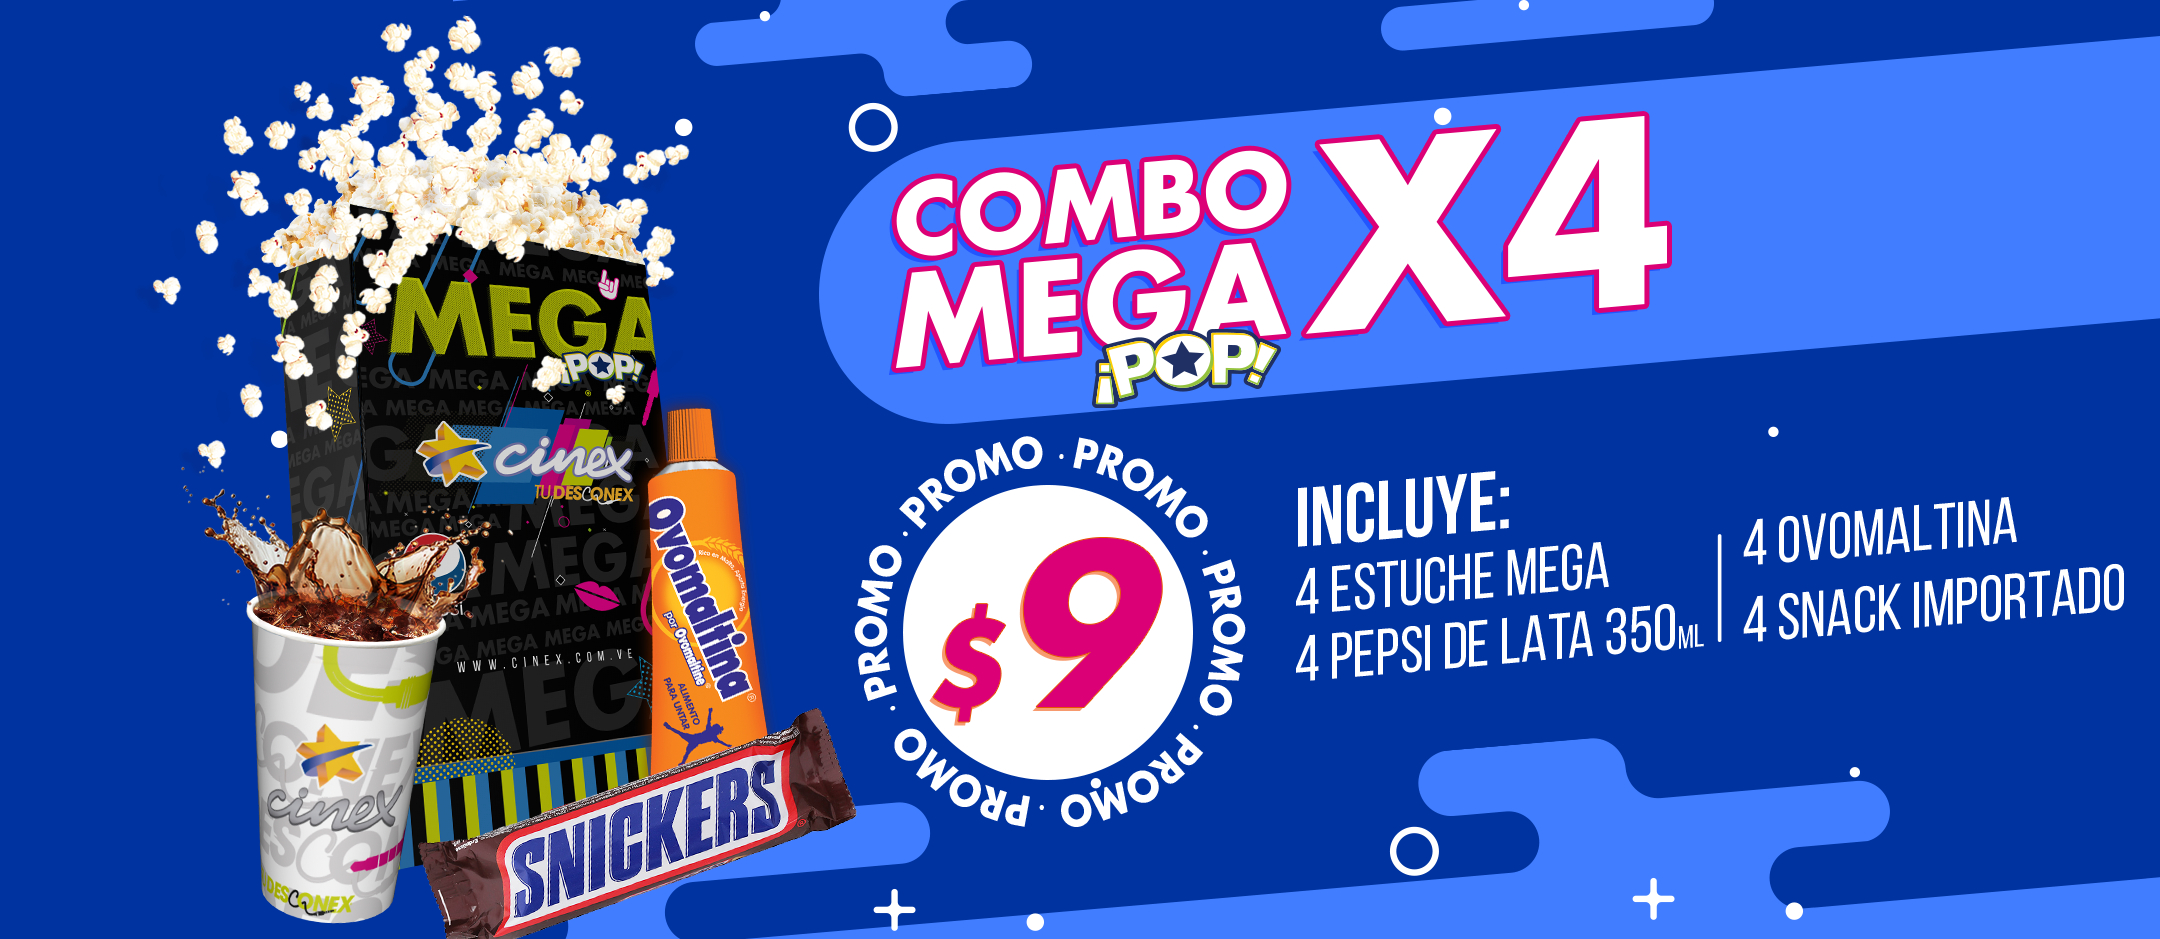 Cinex combo mega pop